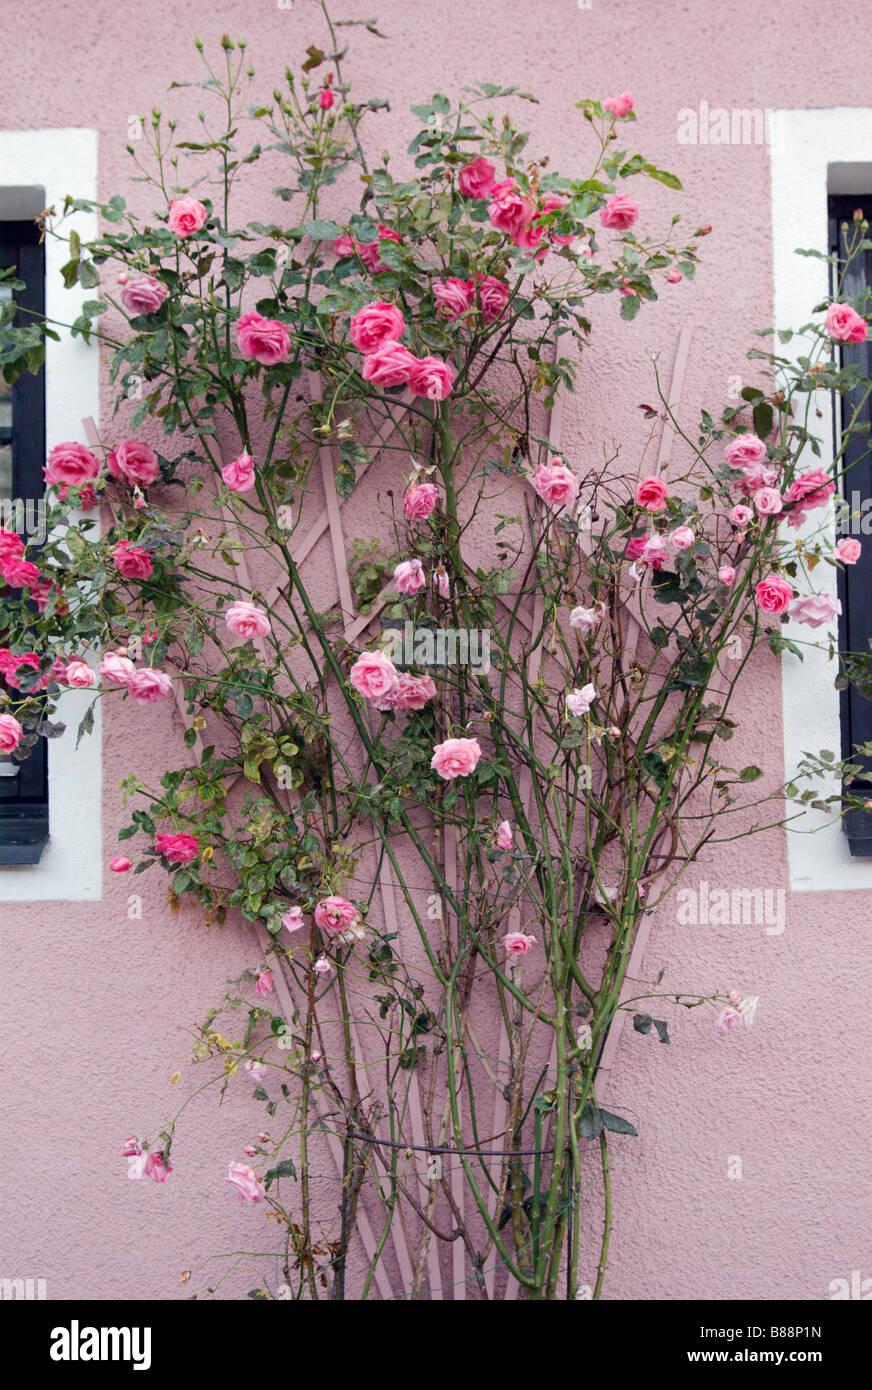 Pink roses climbing a pink wall, Ystad, Sweden - Stock Image